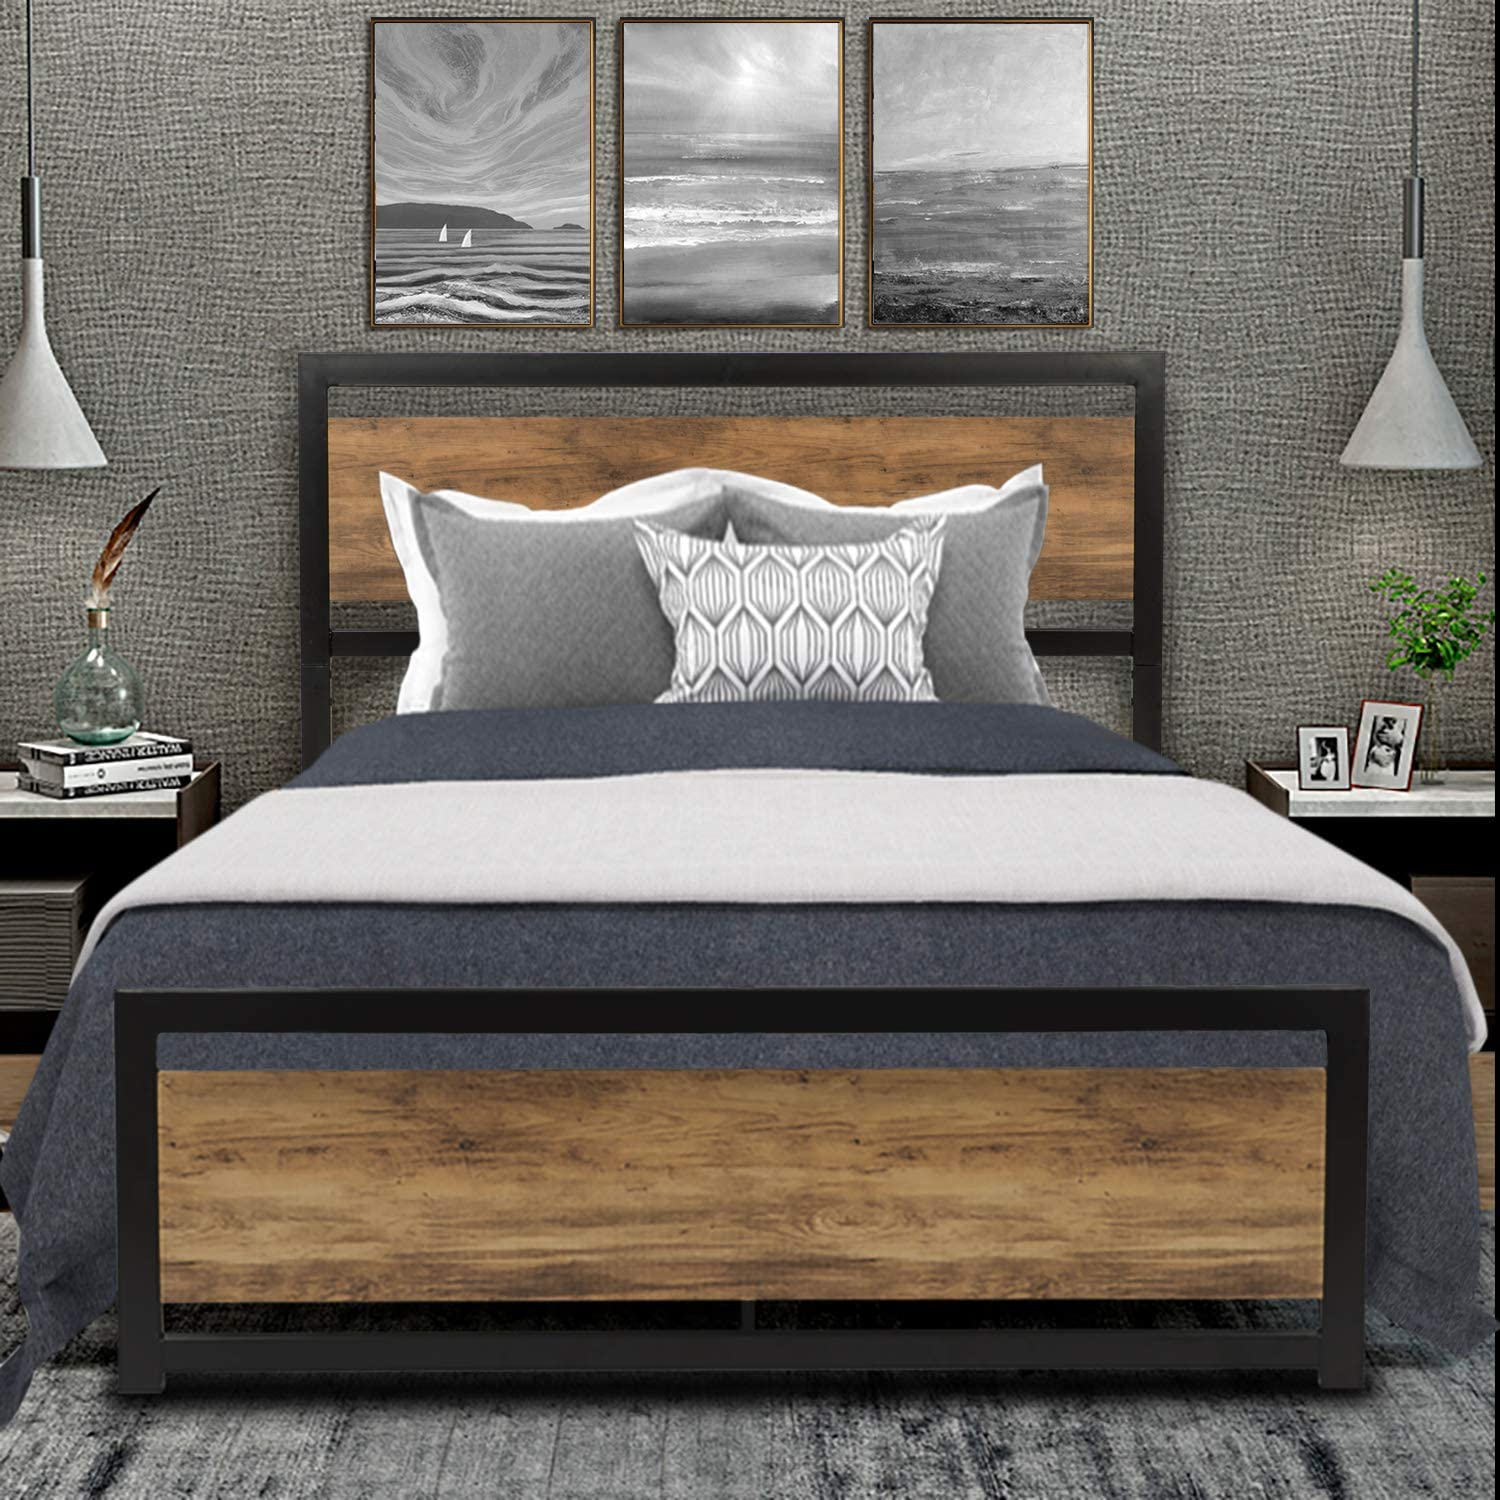 SHA CERLIN Full Size Platform Bed, High Metal and Wood Bed Frame with Wood Headboard Metal Slats, No Box Spring Needed